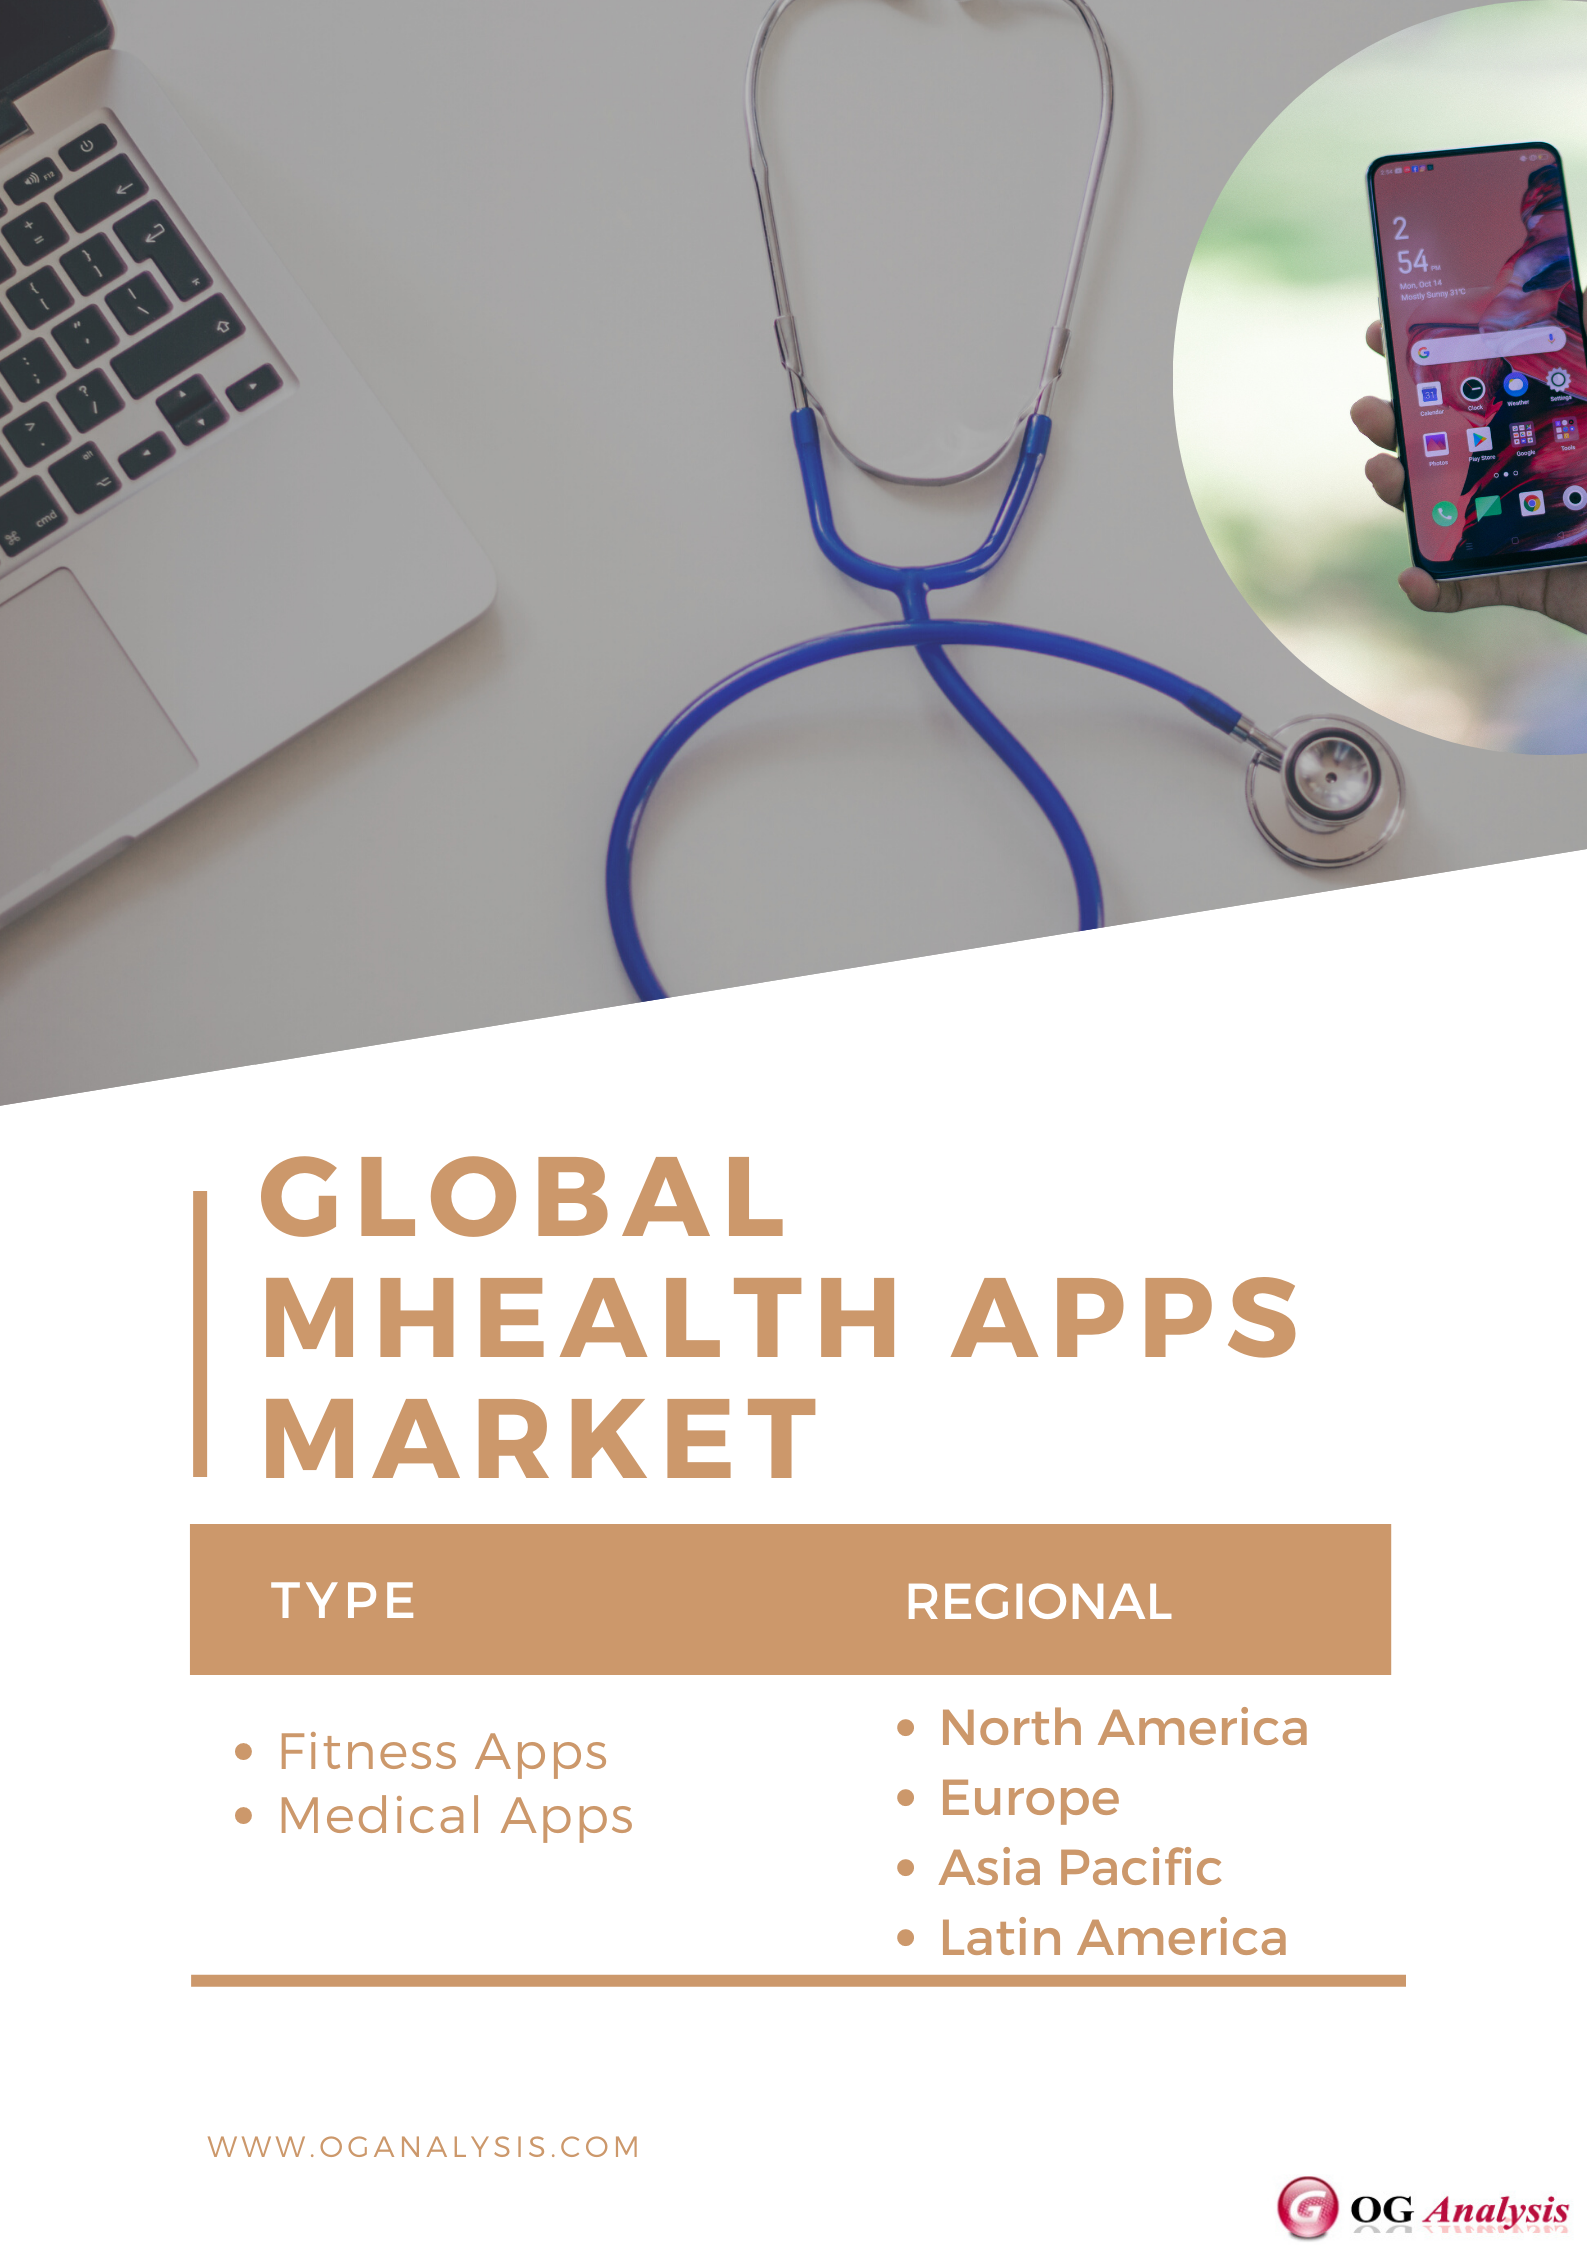 GLOBAL MHEALTH MARKET SIZE OUTLOOK GROWTH OPPORTUNITIES